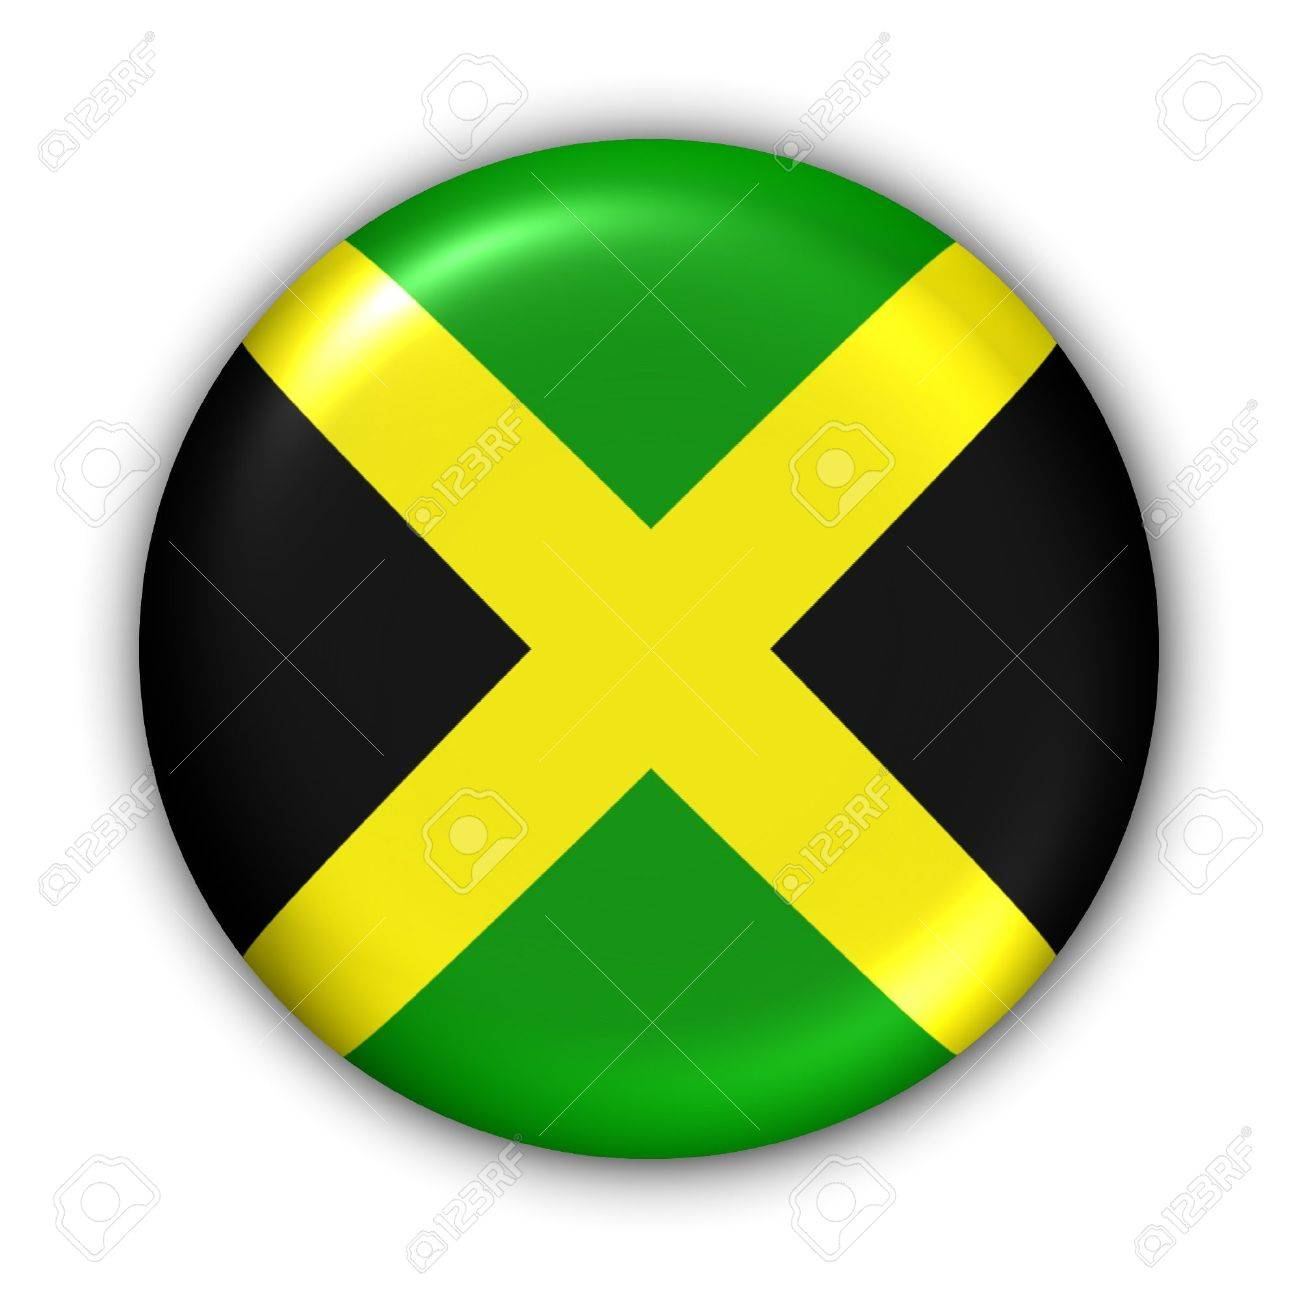 World Flag Button Series - Central America/Caribbean - Jamaica (With Clipping Path) - 374004